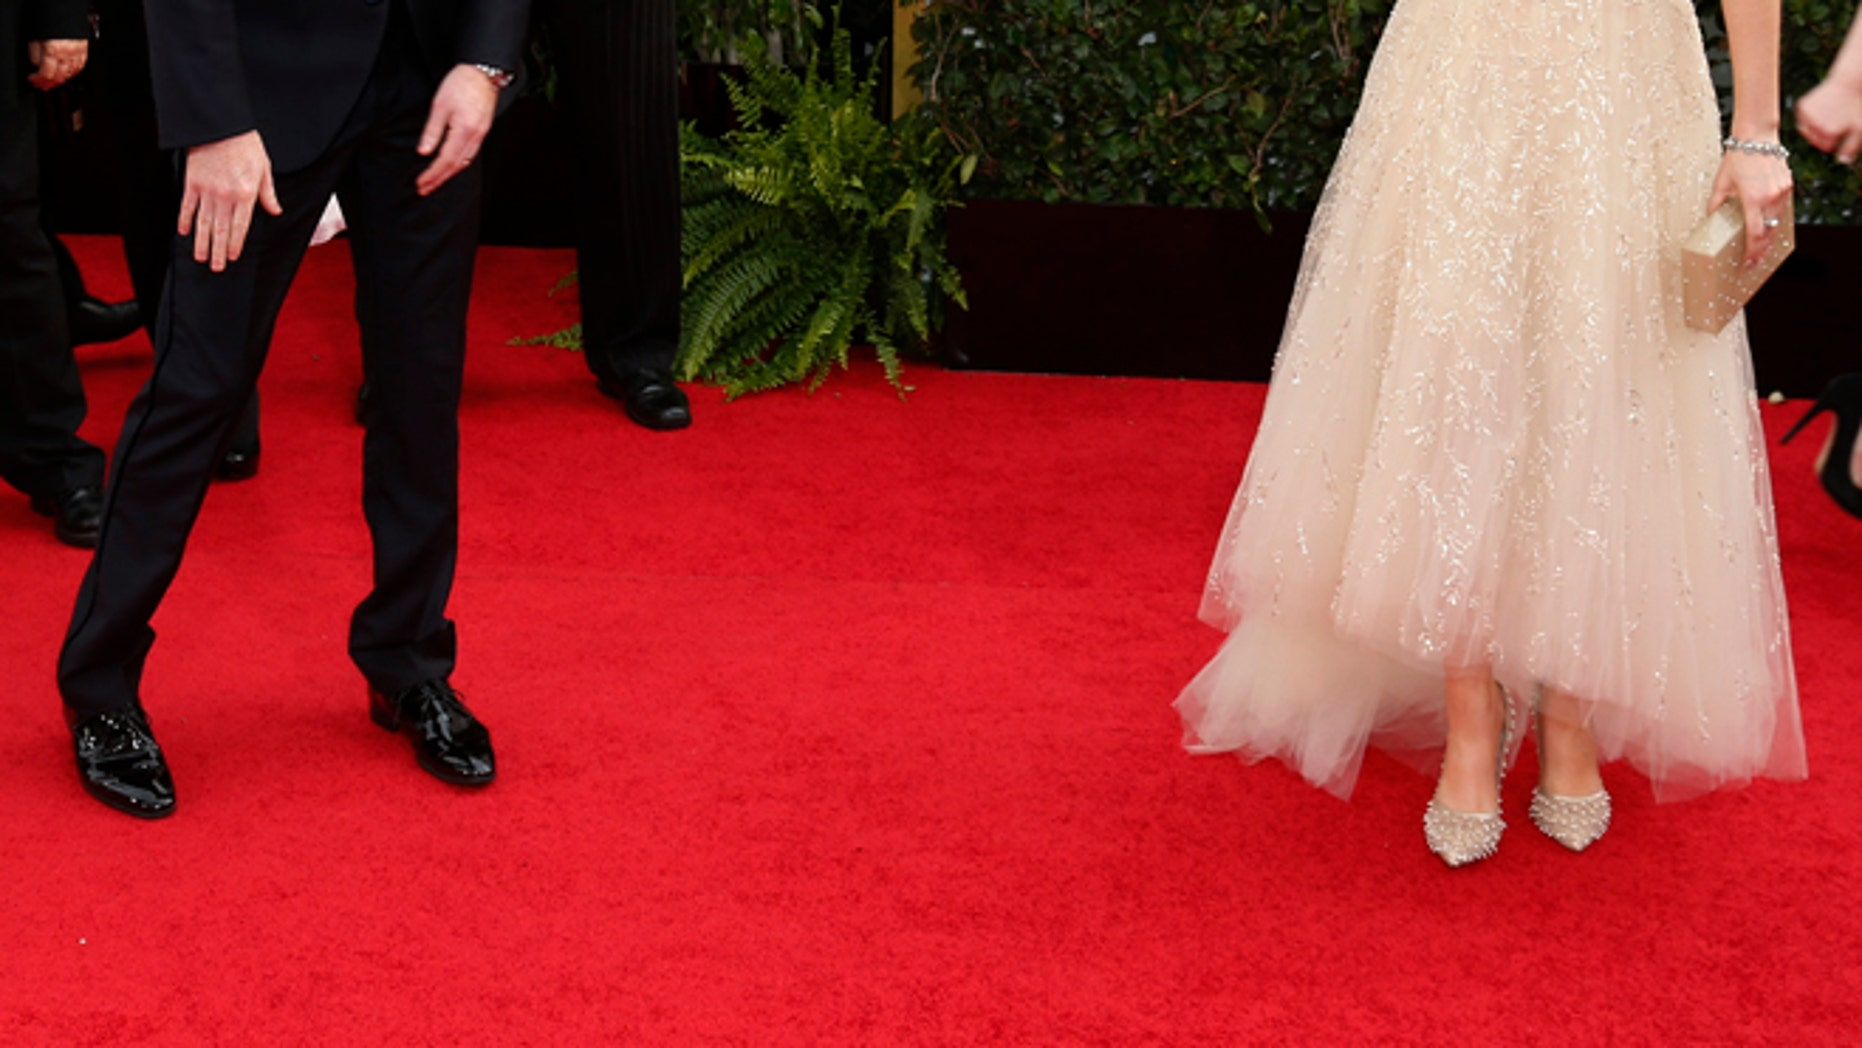 Actress Zooey Deschanel and actor Jesse Tyler Ferguson talk on the red carpet at the 71st annual Golden Globe Awards in Beverly Hills, California January 12, 2014.  REUTERS/Danny Moloshok  (UNITED STATES - Tags: Entertainment)(GOLDENGLOBES-ARRIVALS) - RTX17B5Z